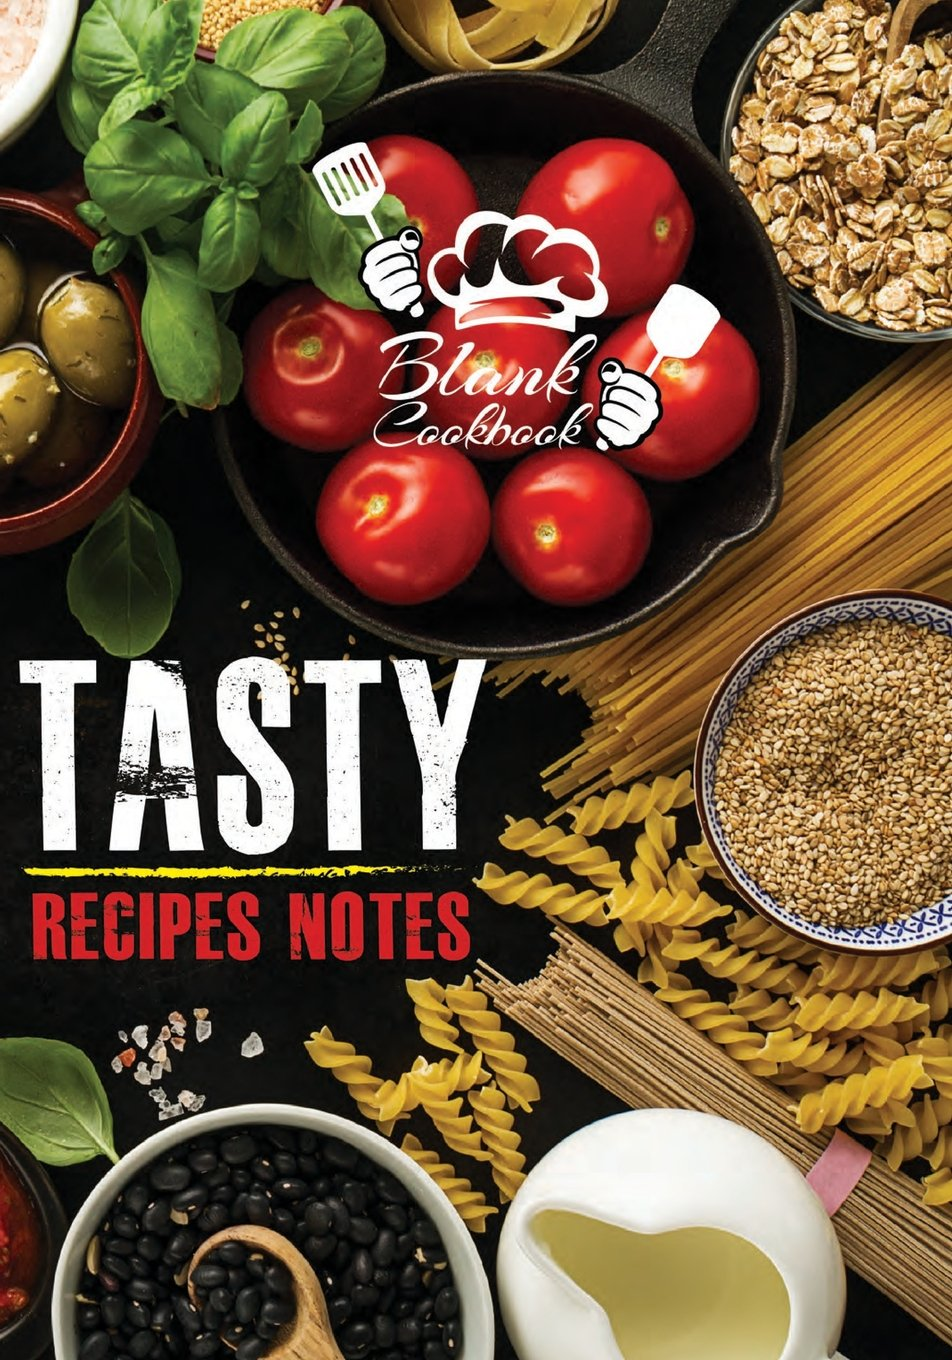 Download Blank Cook book Tasty Recipes Notes: Healthy Instant Pot Recipes Notes Cooking Book, Notes Recipe Journal 7X10 inch pdf